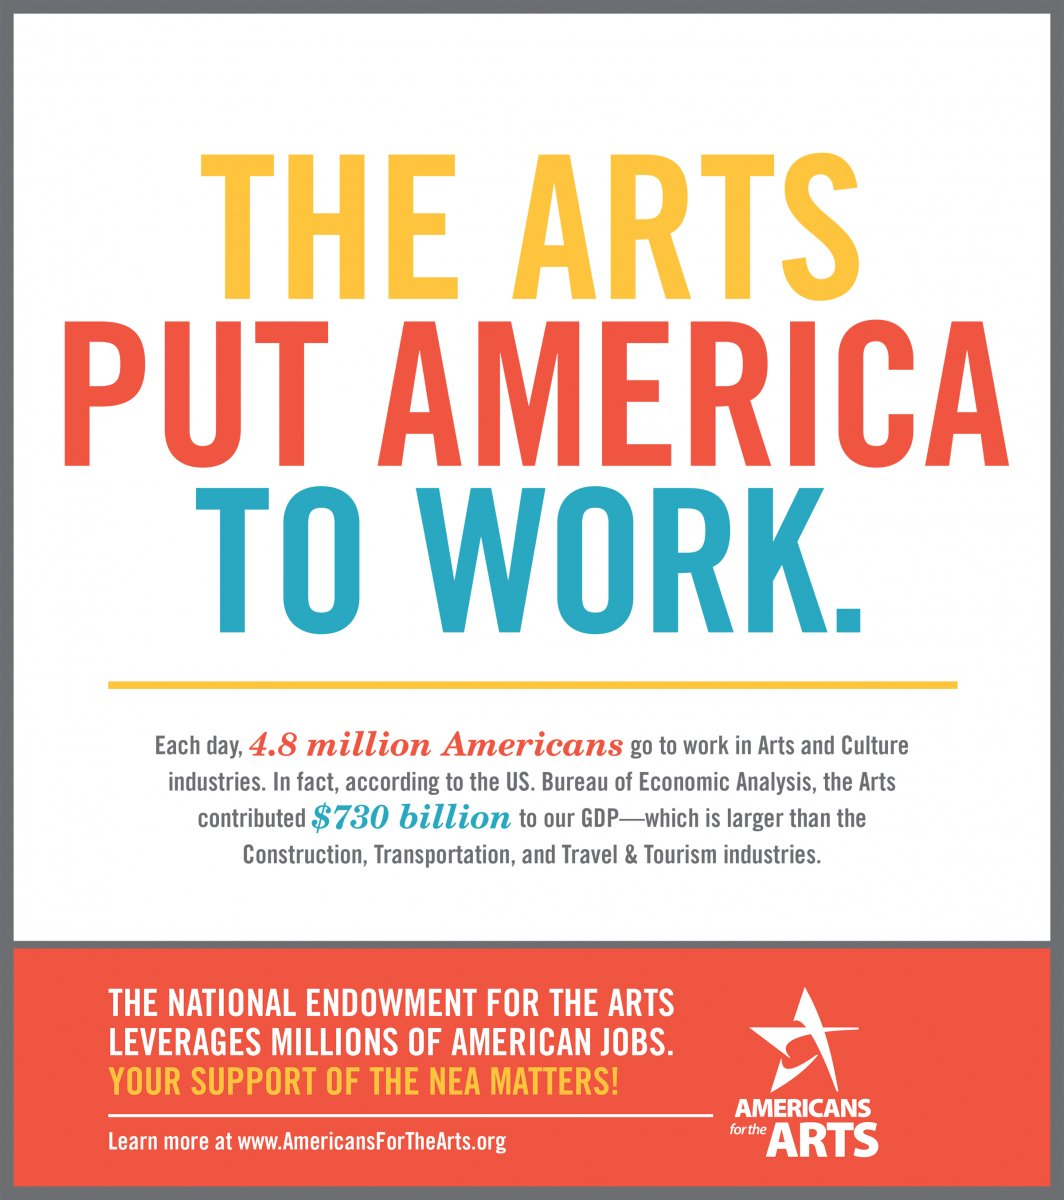 Each day, 4.8 million Americans go to work in Arts and Culture industries @Americans4Arts #artsadvocacy https://t.co/RNZGToqjCm